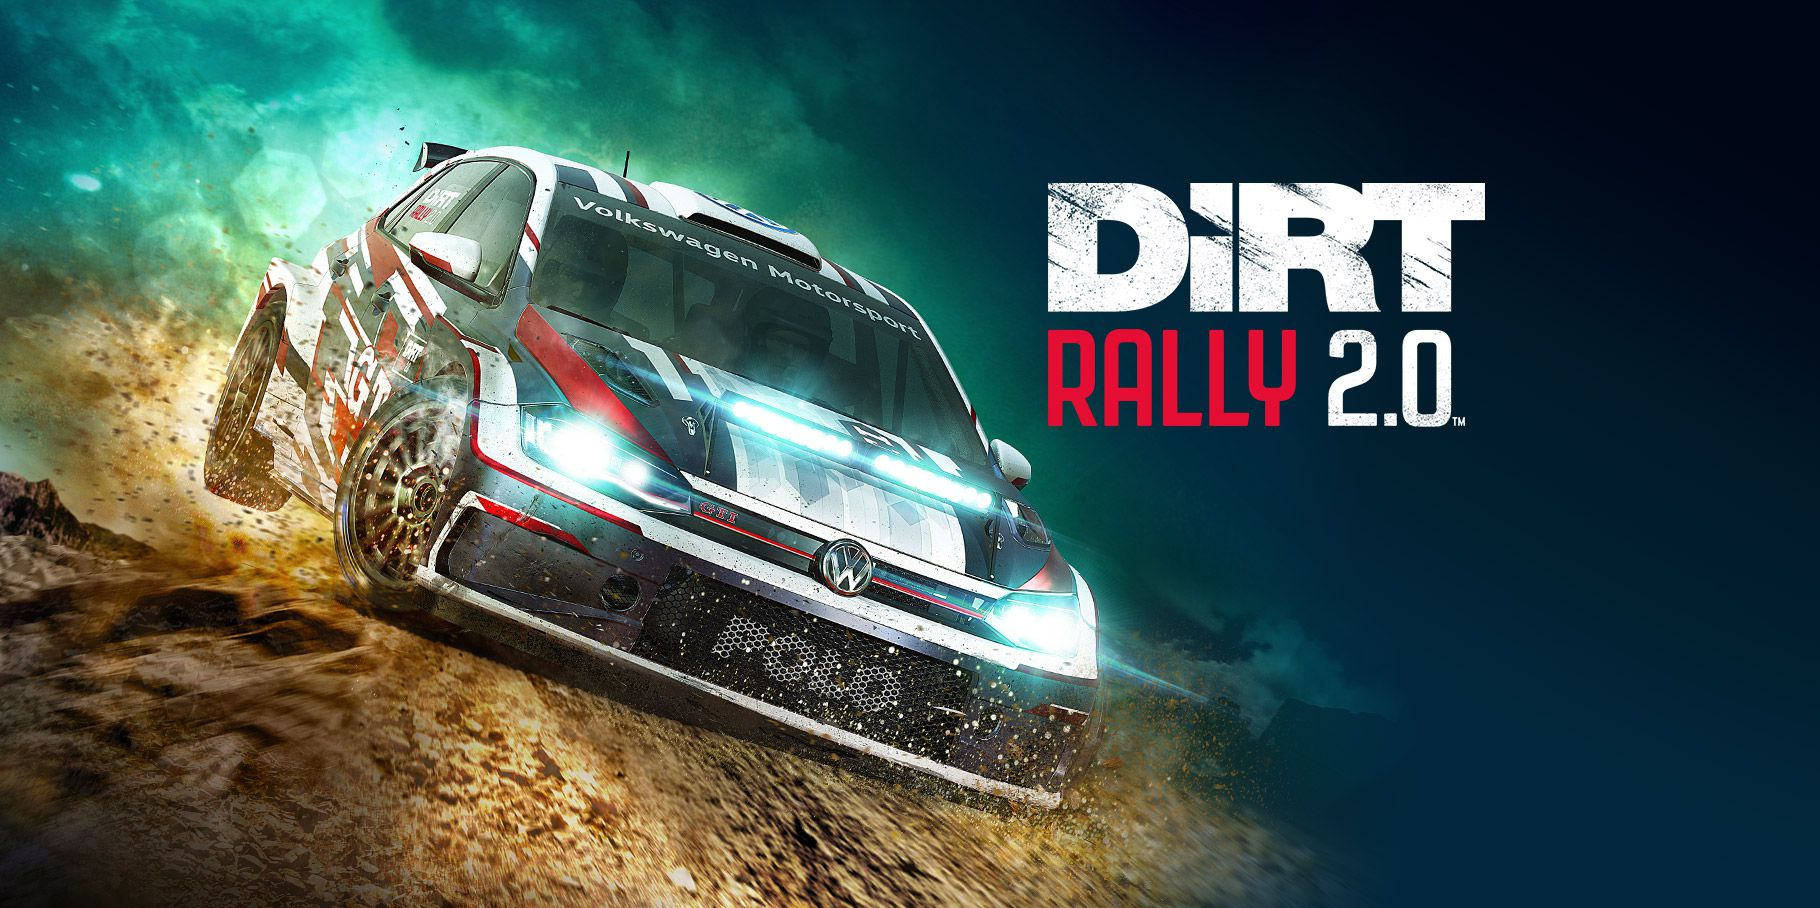 Image results for dirt rally 2.0 colin mcrae